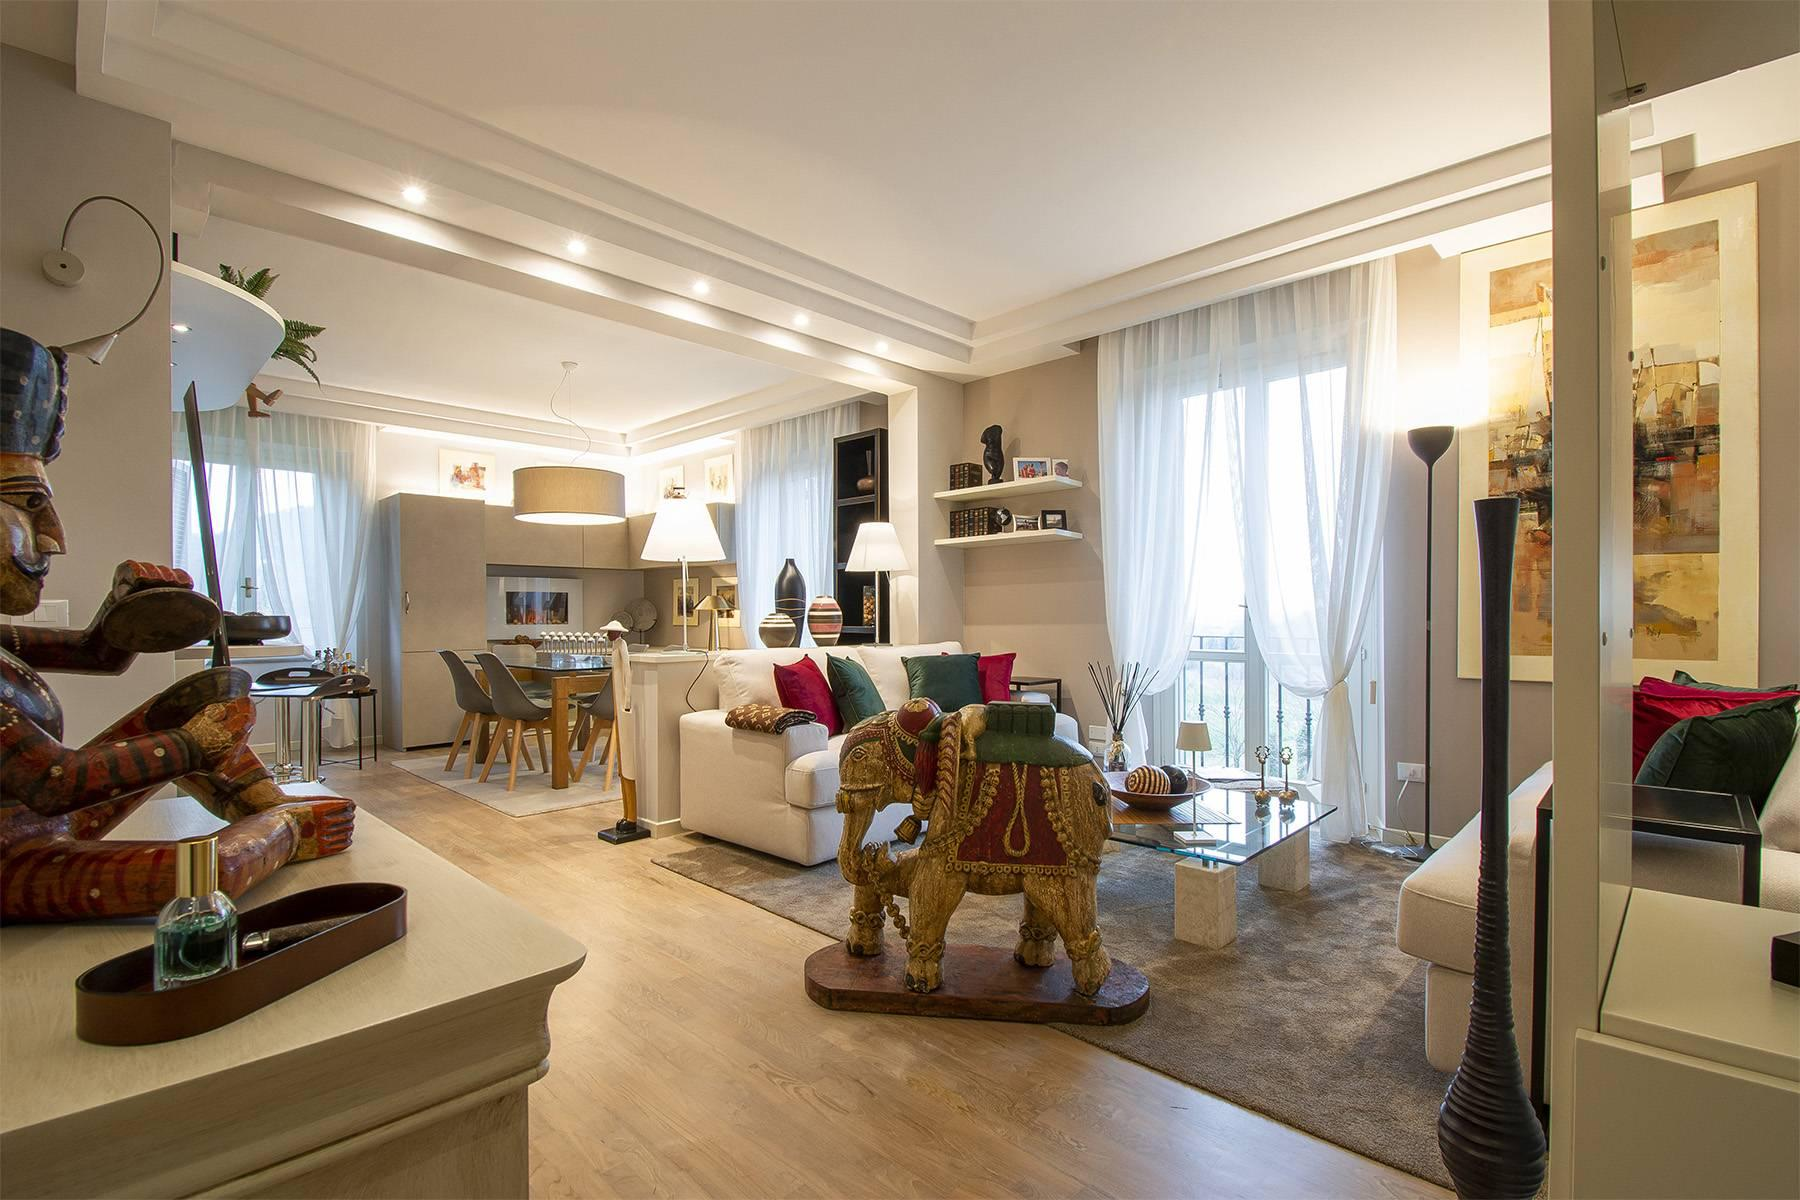 Elegant apartment for rent in Montecatini Terme - 1